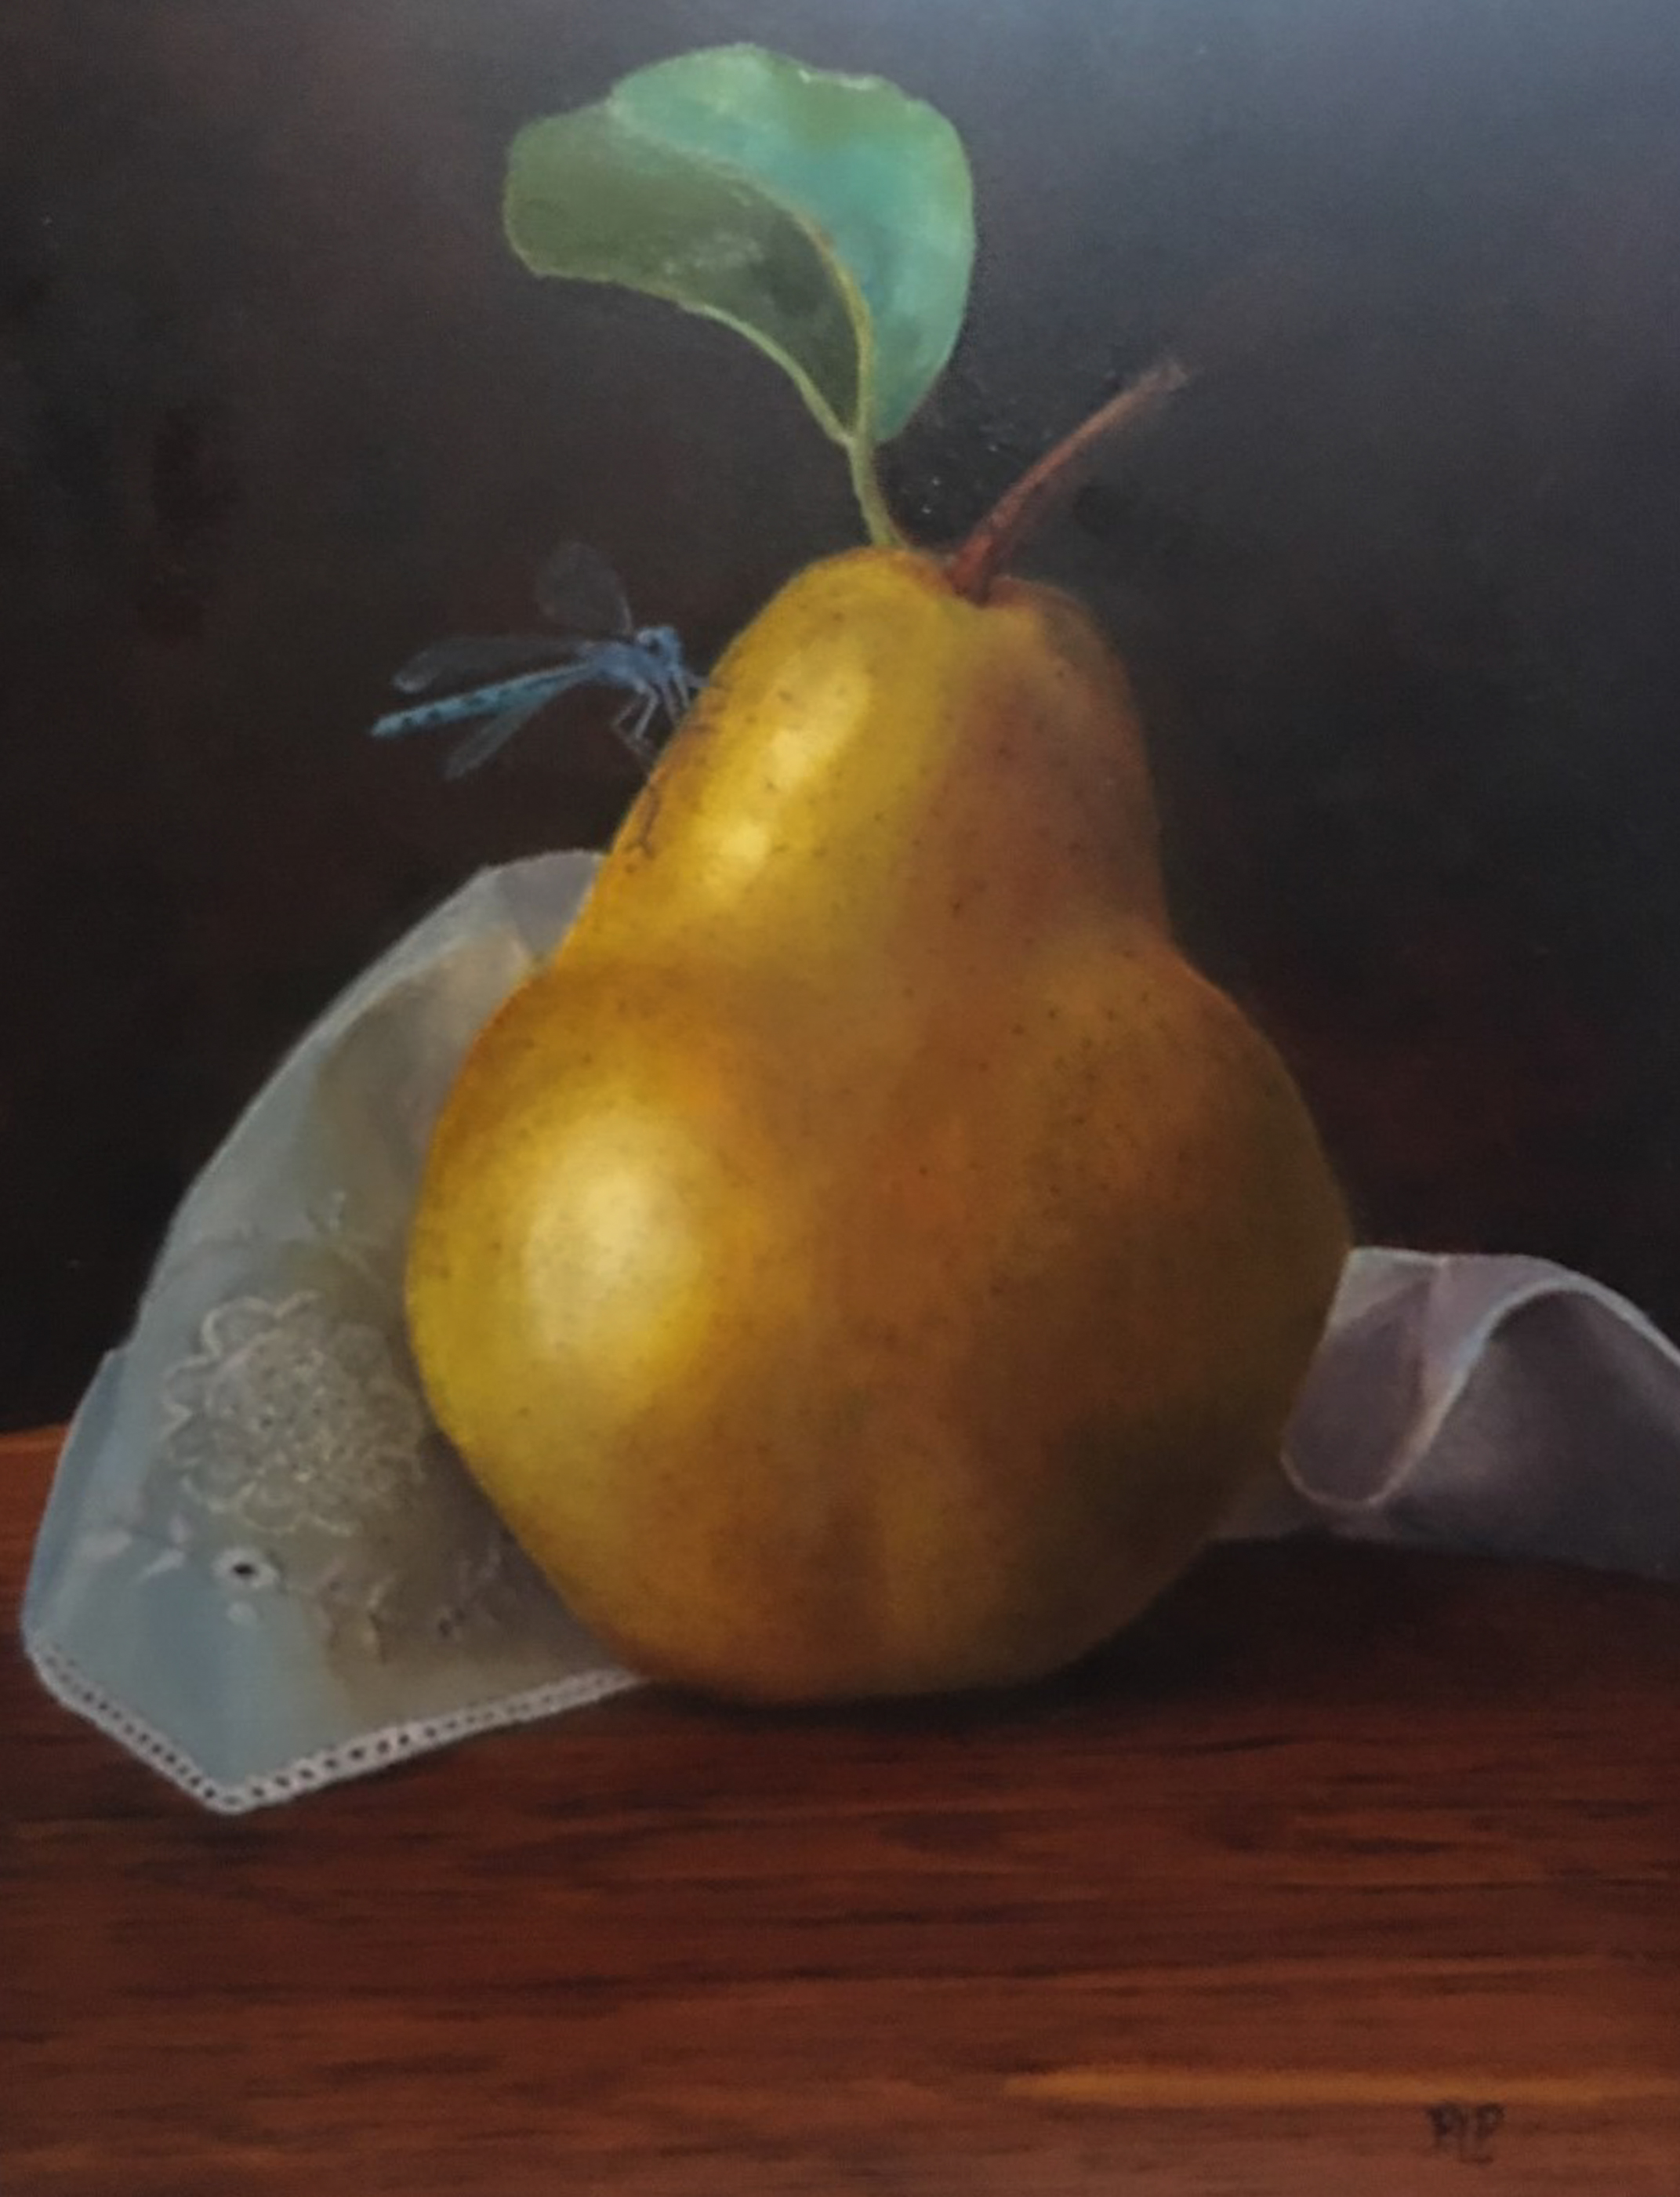 Damsel and Pear